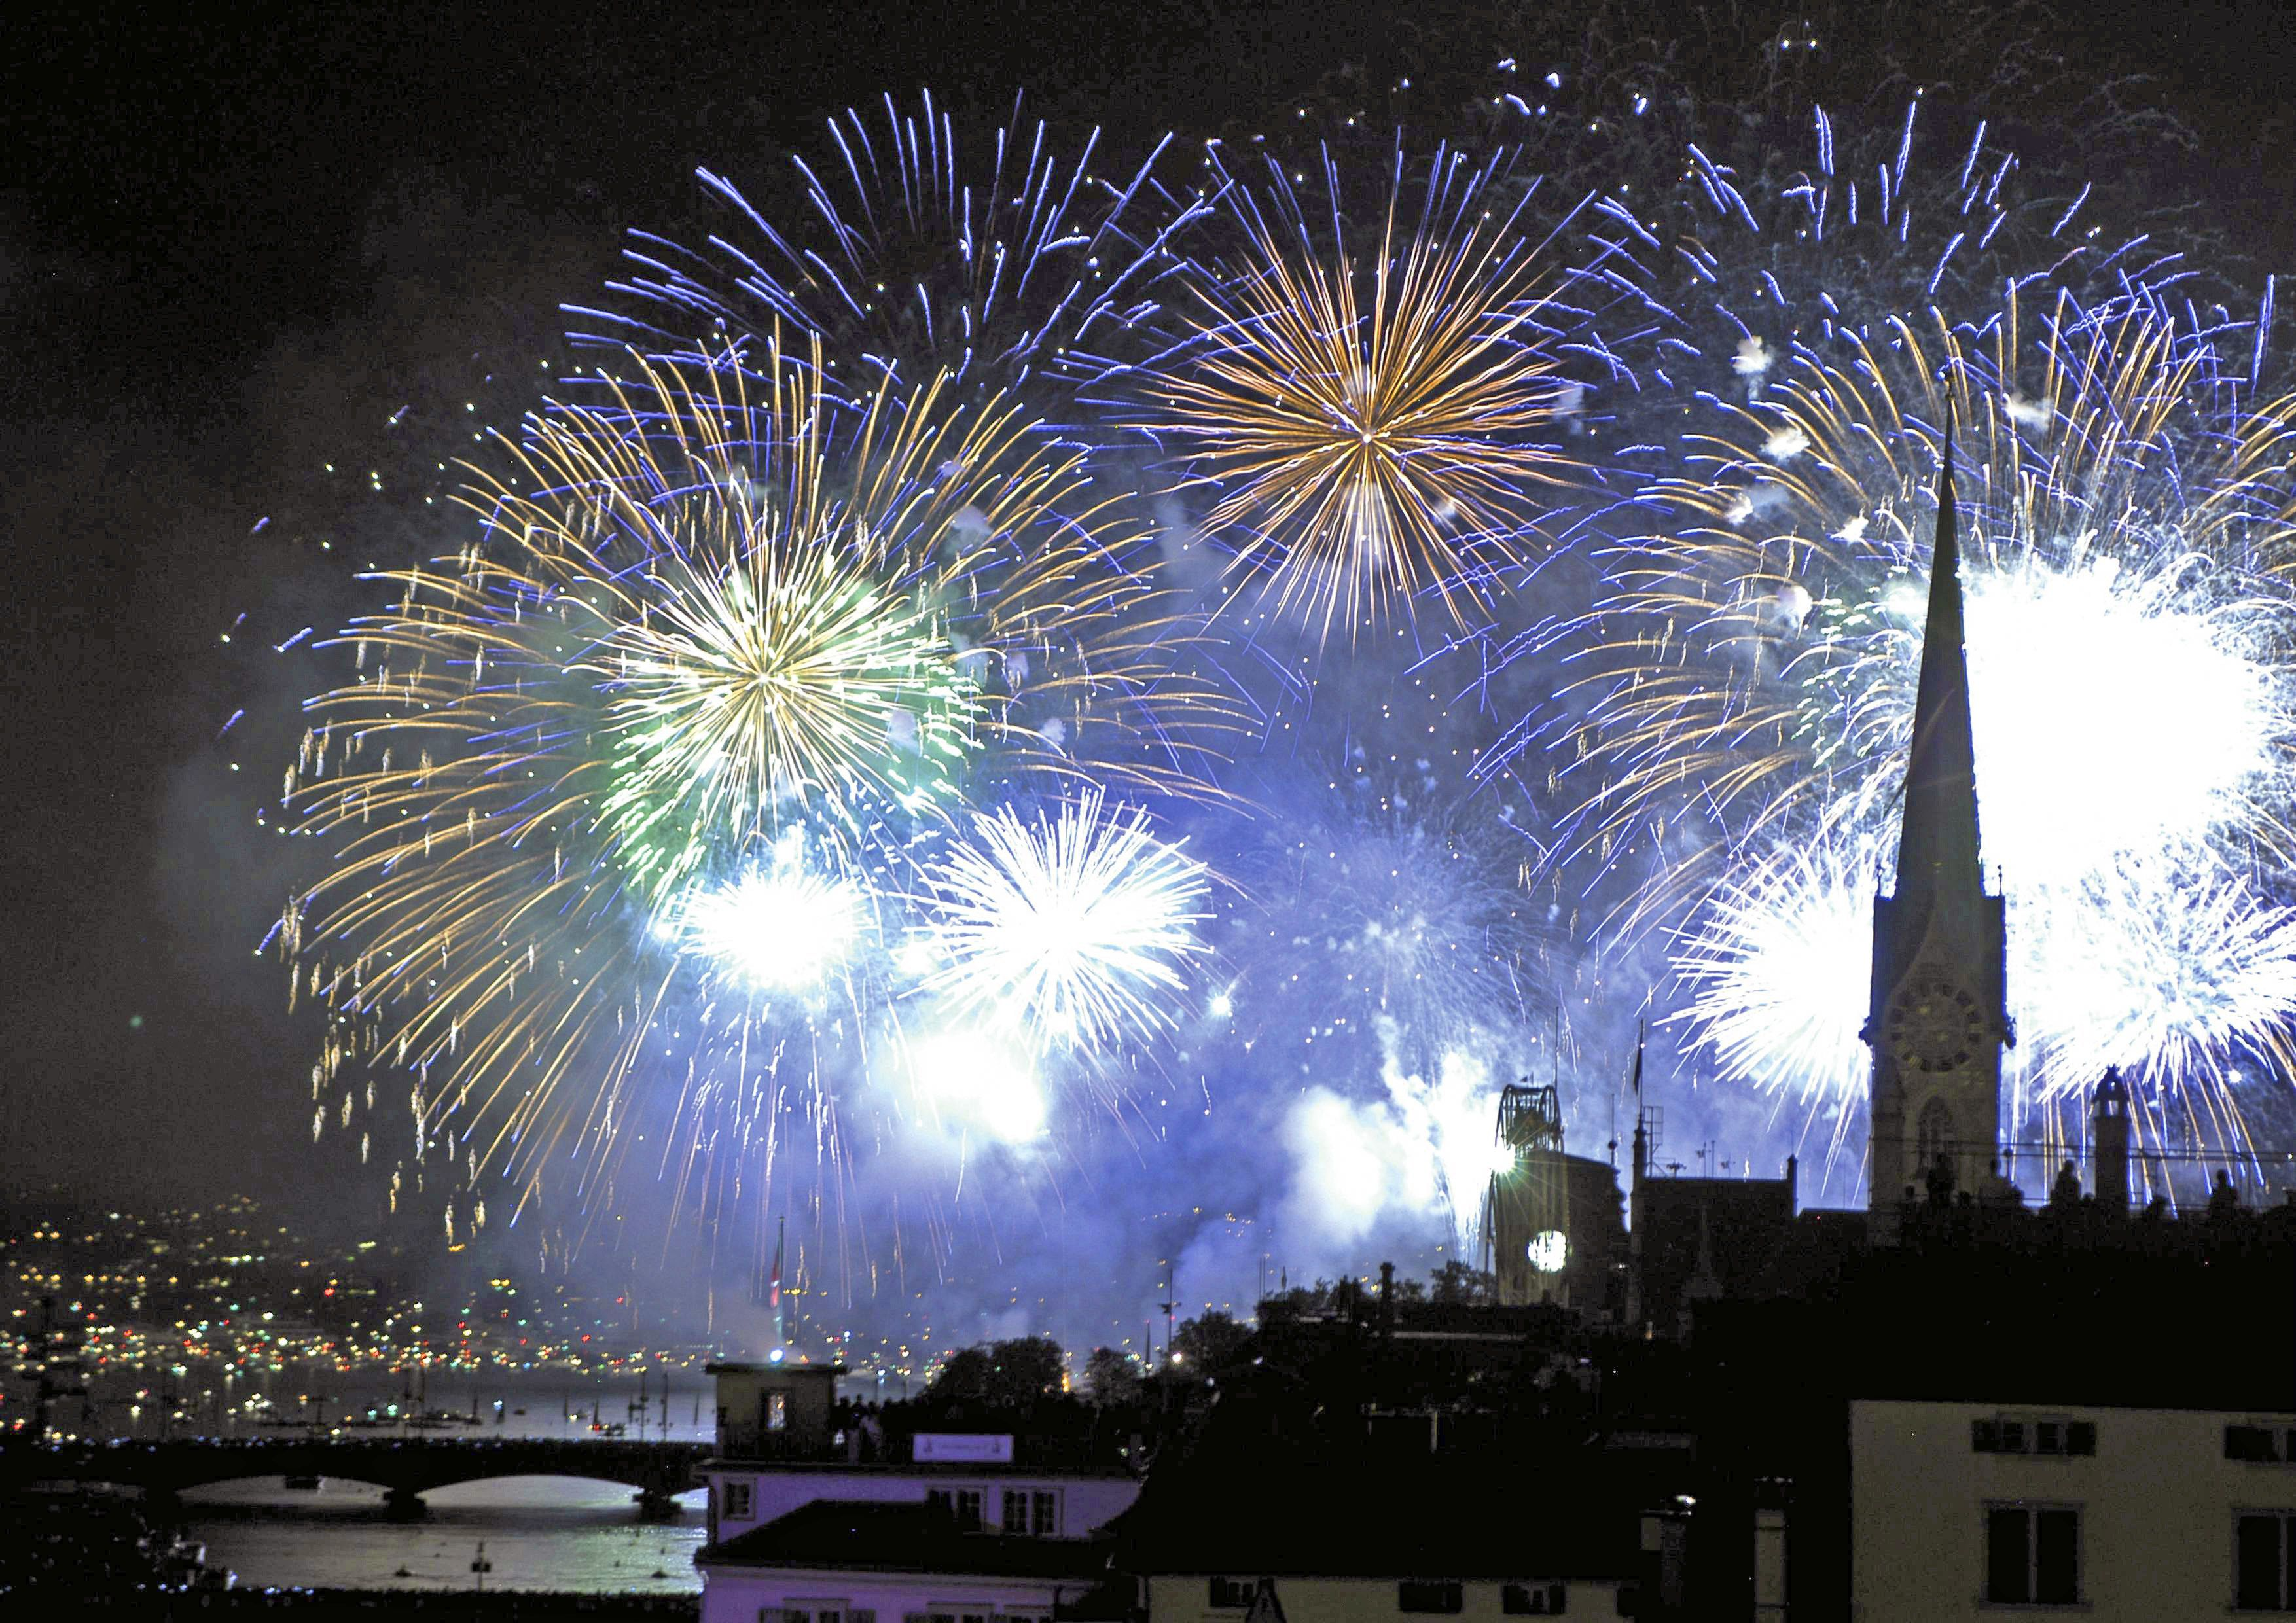 The World S Most Exciting New Year S Eve Celebrations New Year Fireworks Wedding Fireworks Fireworks